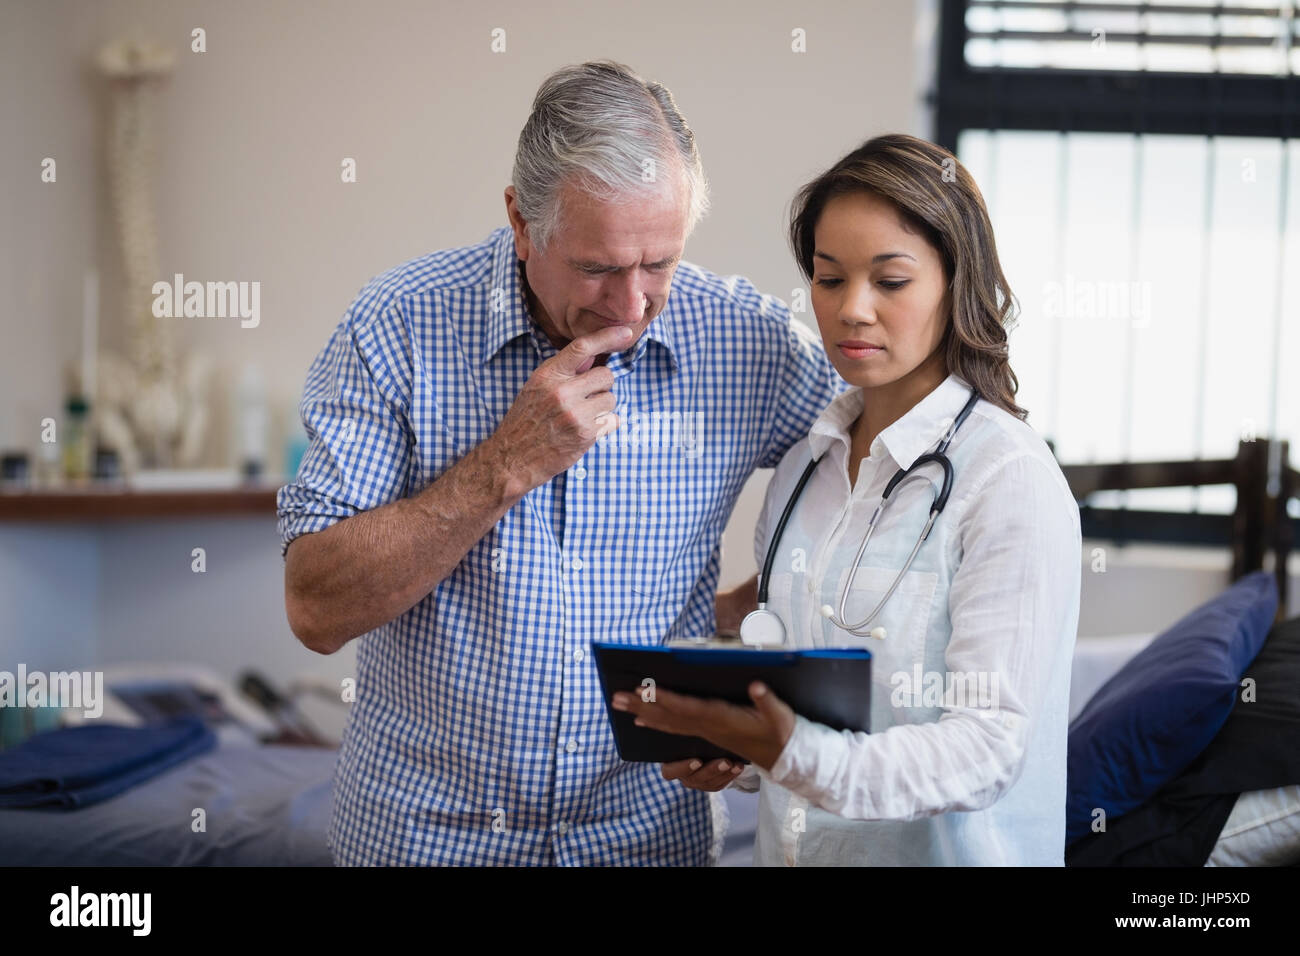 Senior male patient and female therapist discussing file at hospital ward - Stock Image